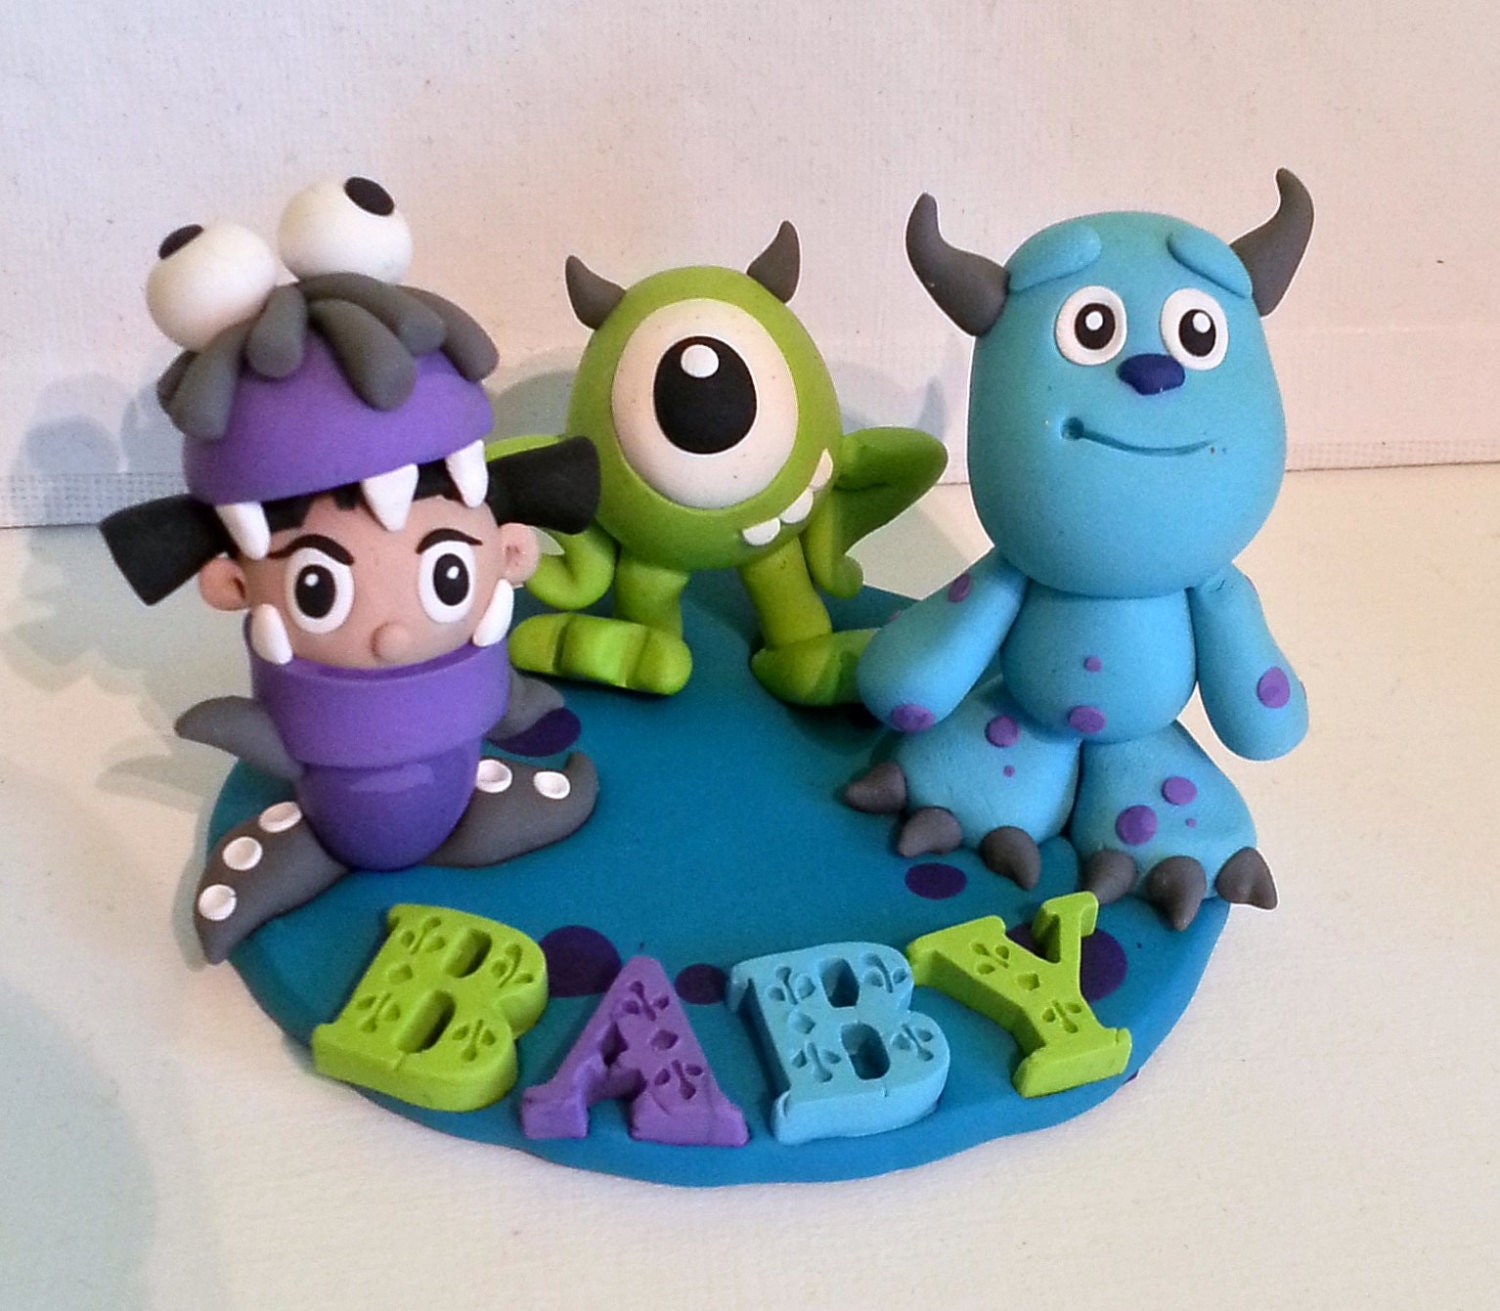 Cake Toppers Baby Shower Etsy : Monsters INC Baby Shower Cake Topper & Keepsake by RSQD on ...